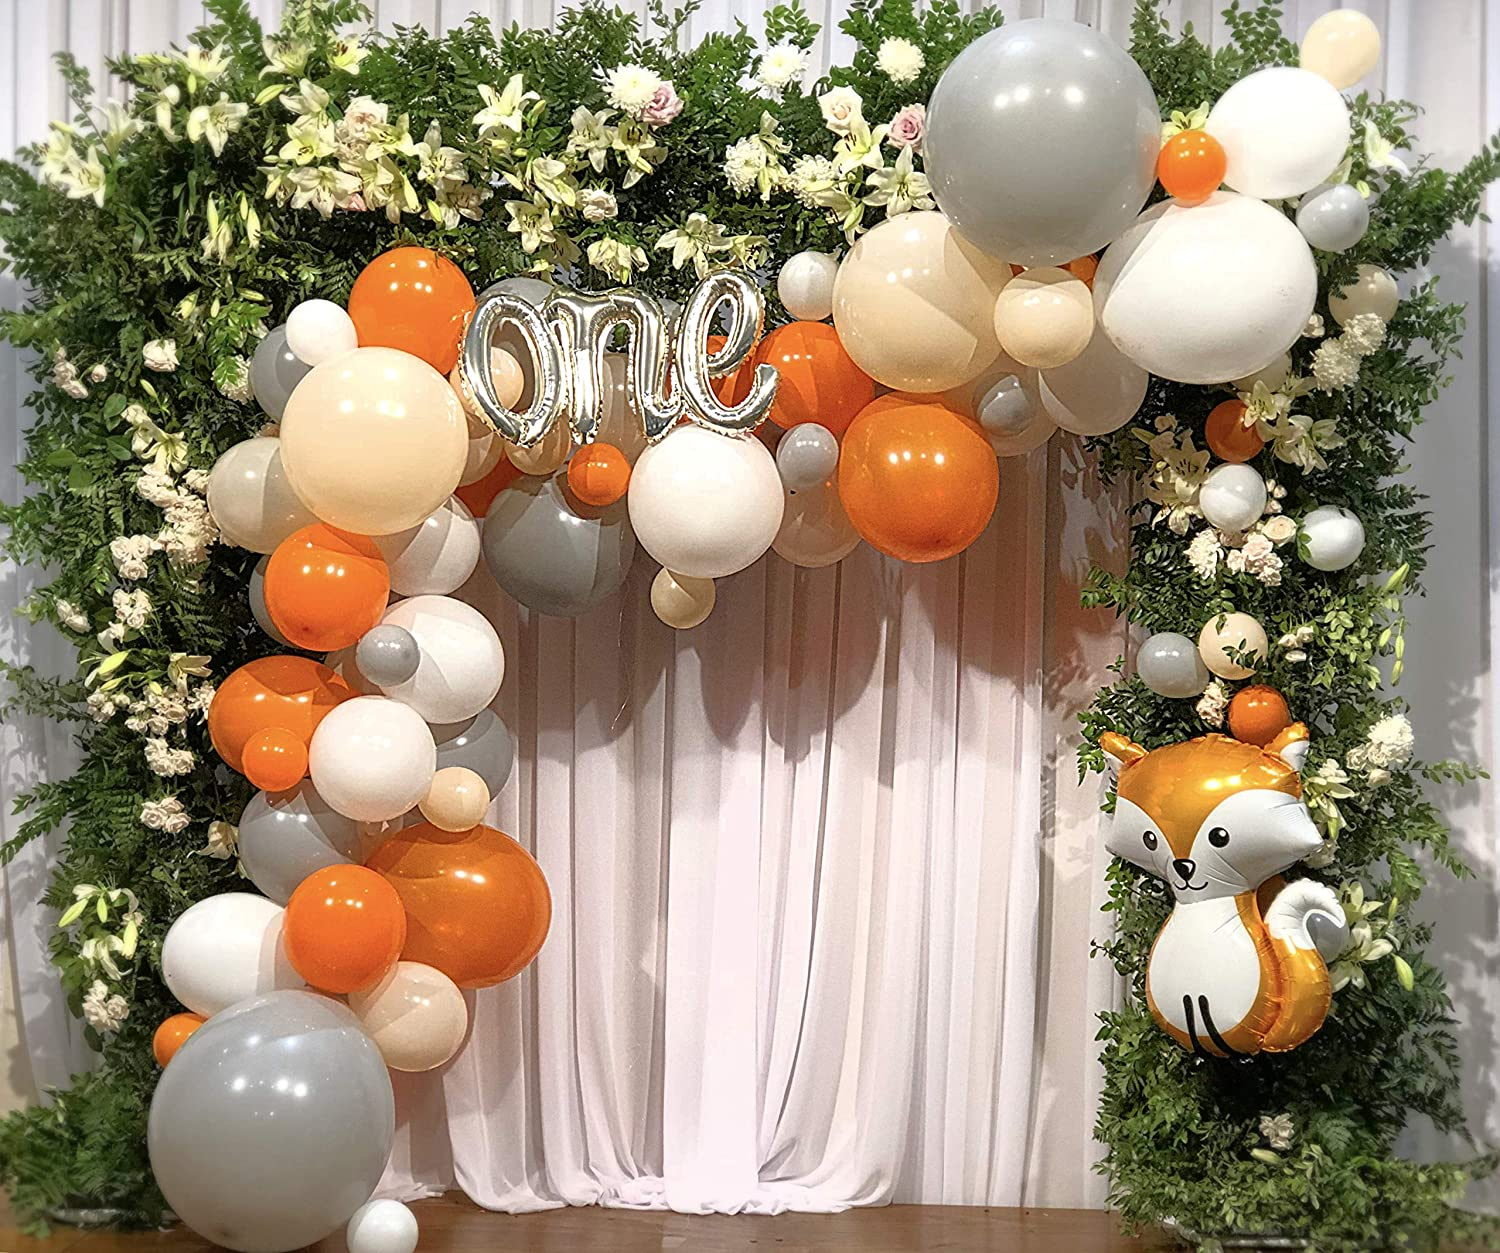 DIY Balloon Garland – Balloon Arch with Woodland Fox, One Script, White, Orange, Blush and Grey Balloons – Baby Shower, Birthday Party Decorations – by Alchik